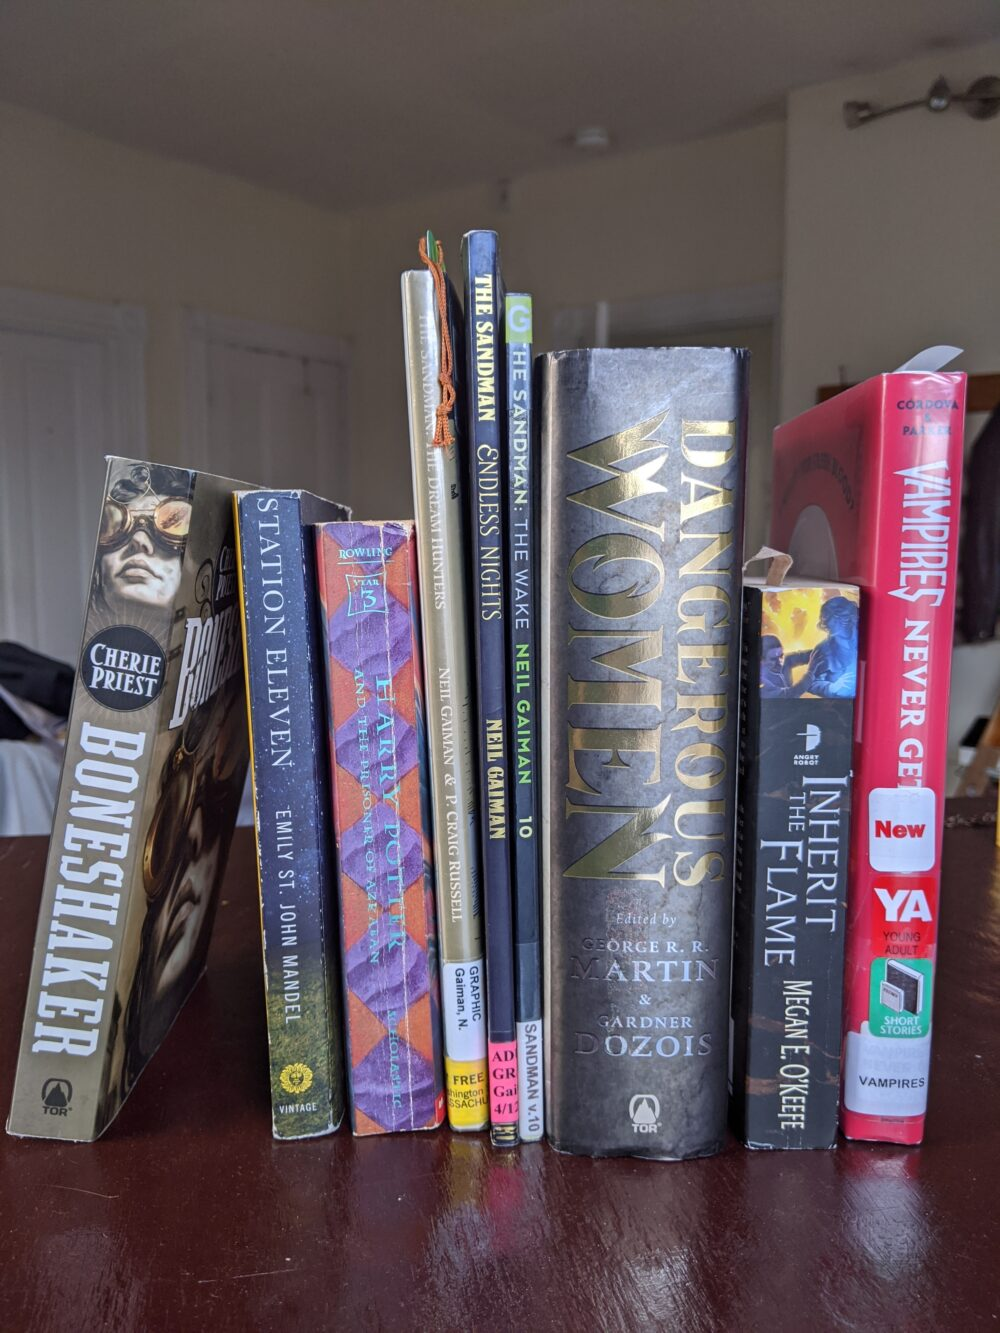 Image of several books, all of which will be listed below